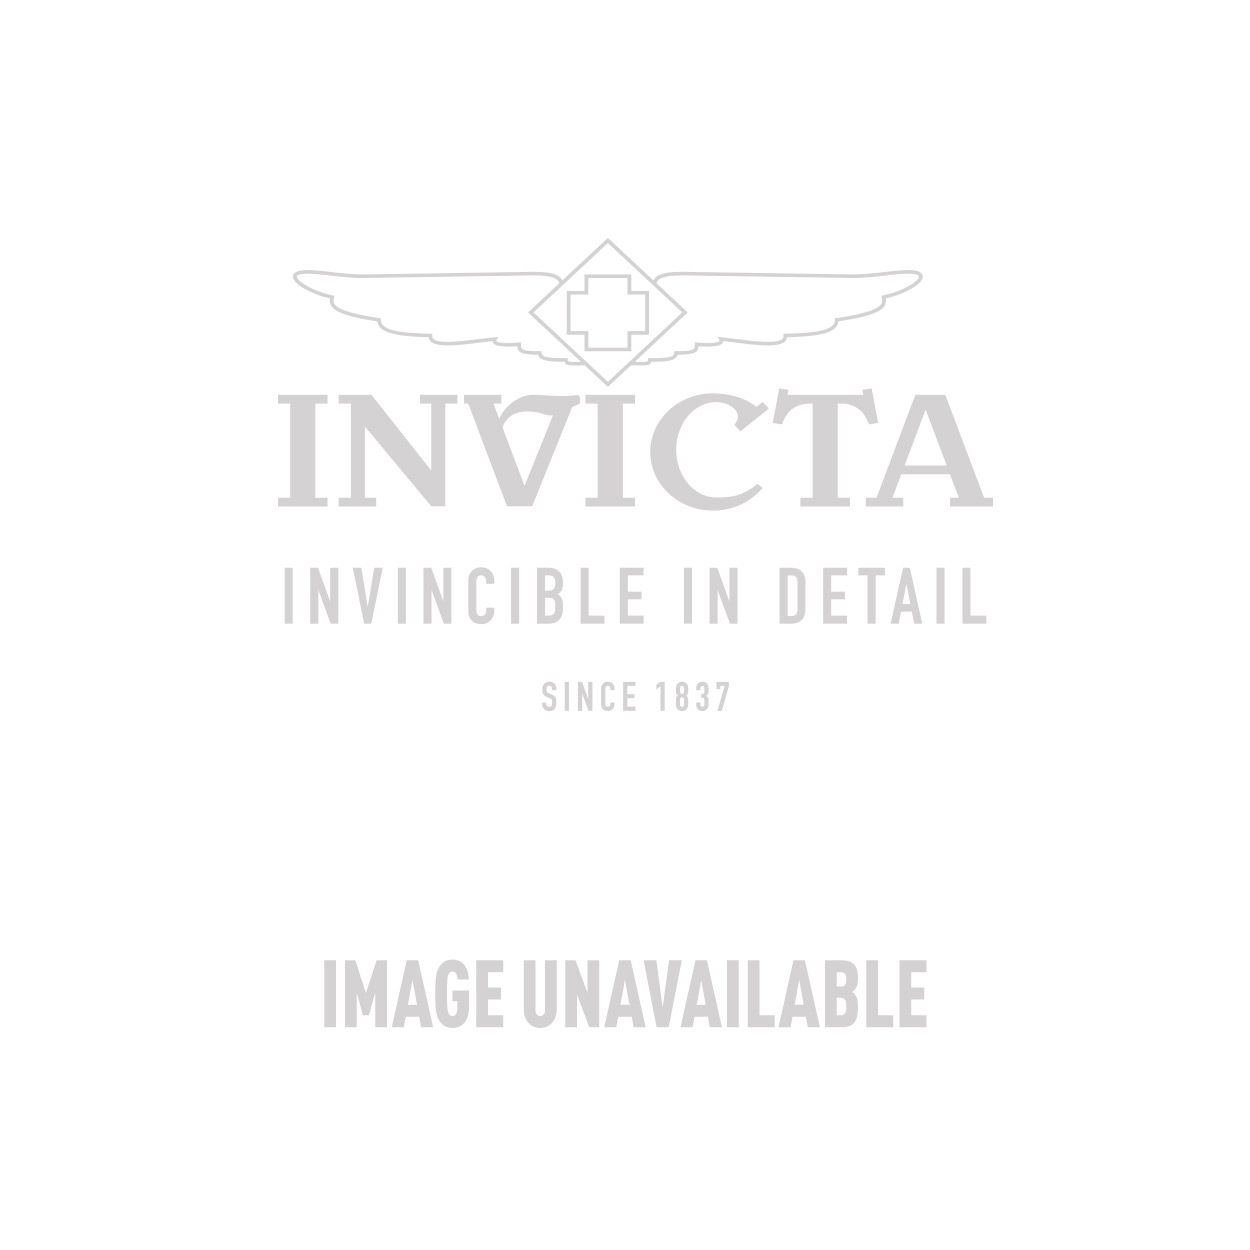 Invicta  Specialty Subaqua  Quartz Watch - Rose Gold, Stainless Steel case Stainless Steel band - Model 12907